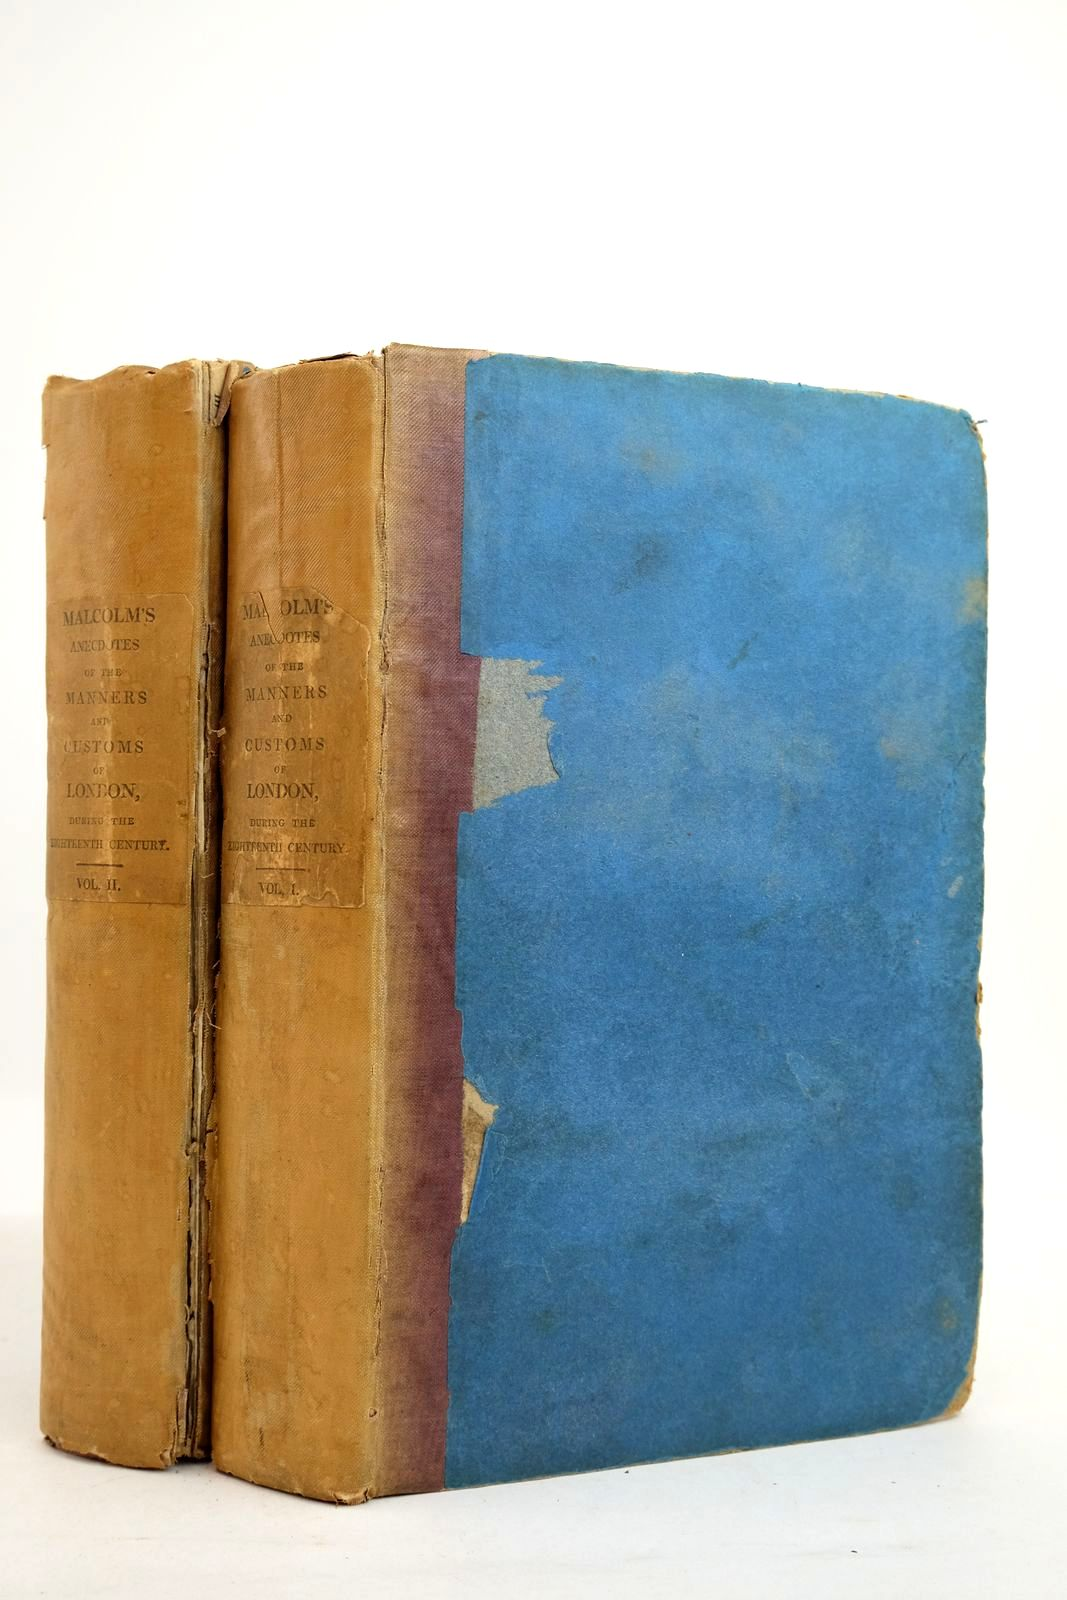 Photo of ANECDOTES OF THE MANNERS AND CUSTOMS OF LONDON DURING THE EIGHTEENTH CENTURY (2 VOLUMES) written by Malcolm, James Peller published by Longman, Hurst, Rees And Orme (STOCK CODE: 2134926)  for sale by Stella & Rose's Books